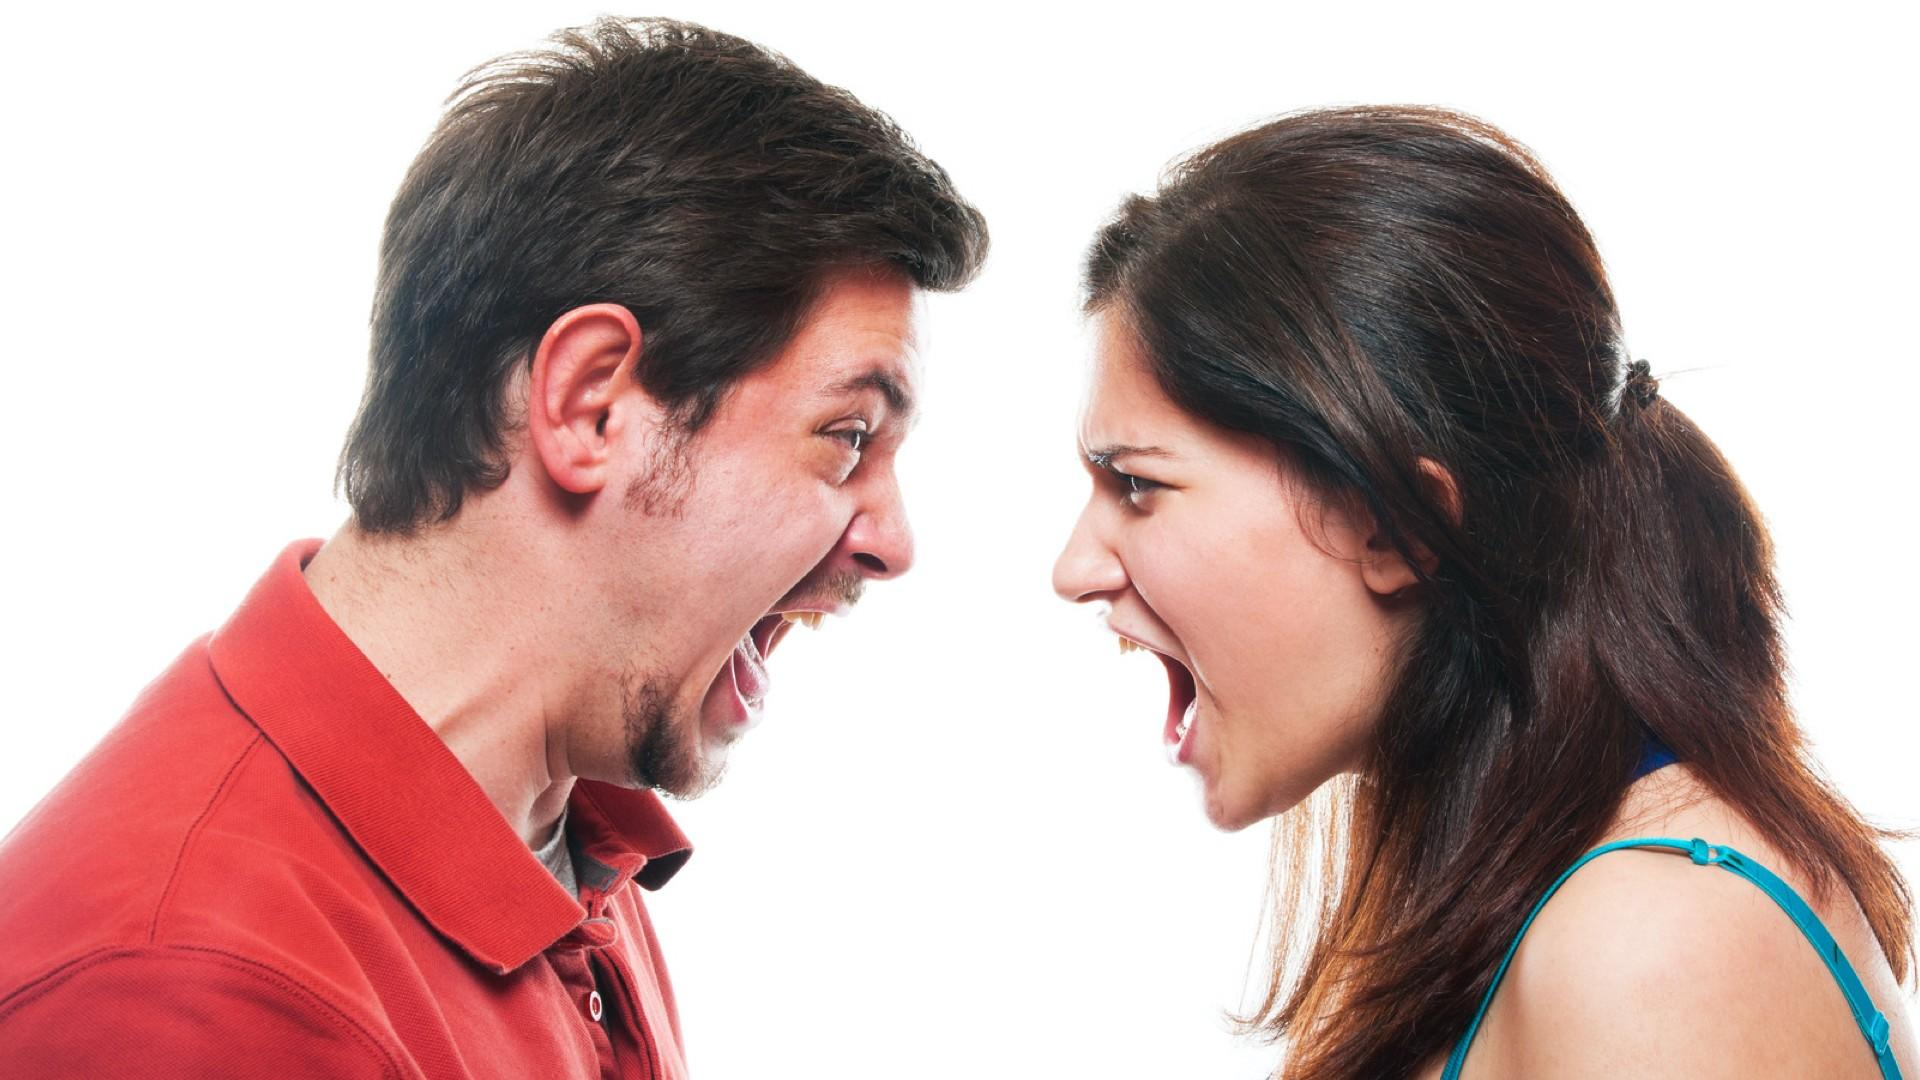 Man and woman arguing because they lack self awareness